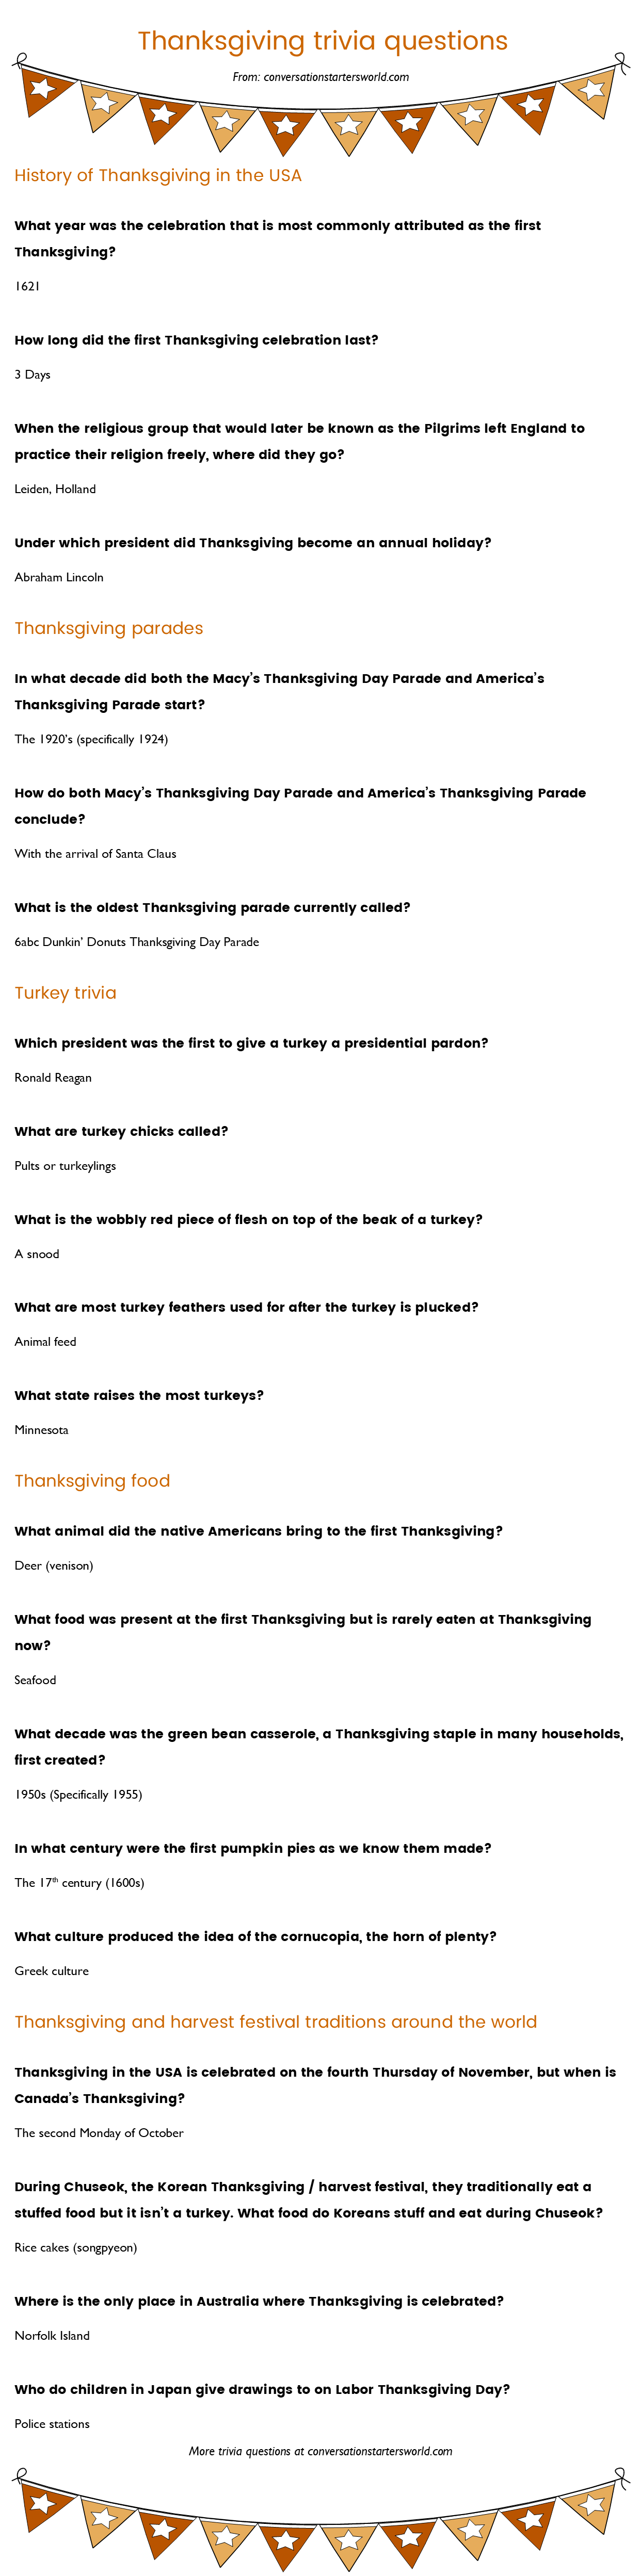 photo about Animal Trivia Questions and Answers Printable identified as 21 Thanksgiving trivia issues optimum All those dont notice the